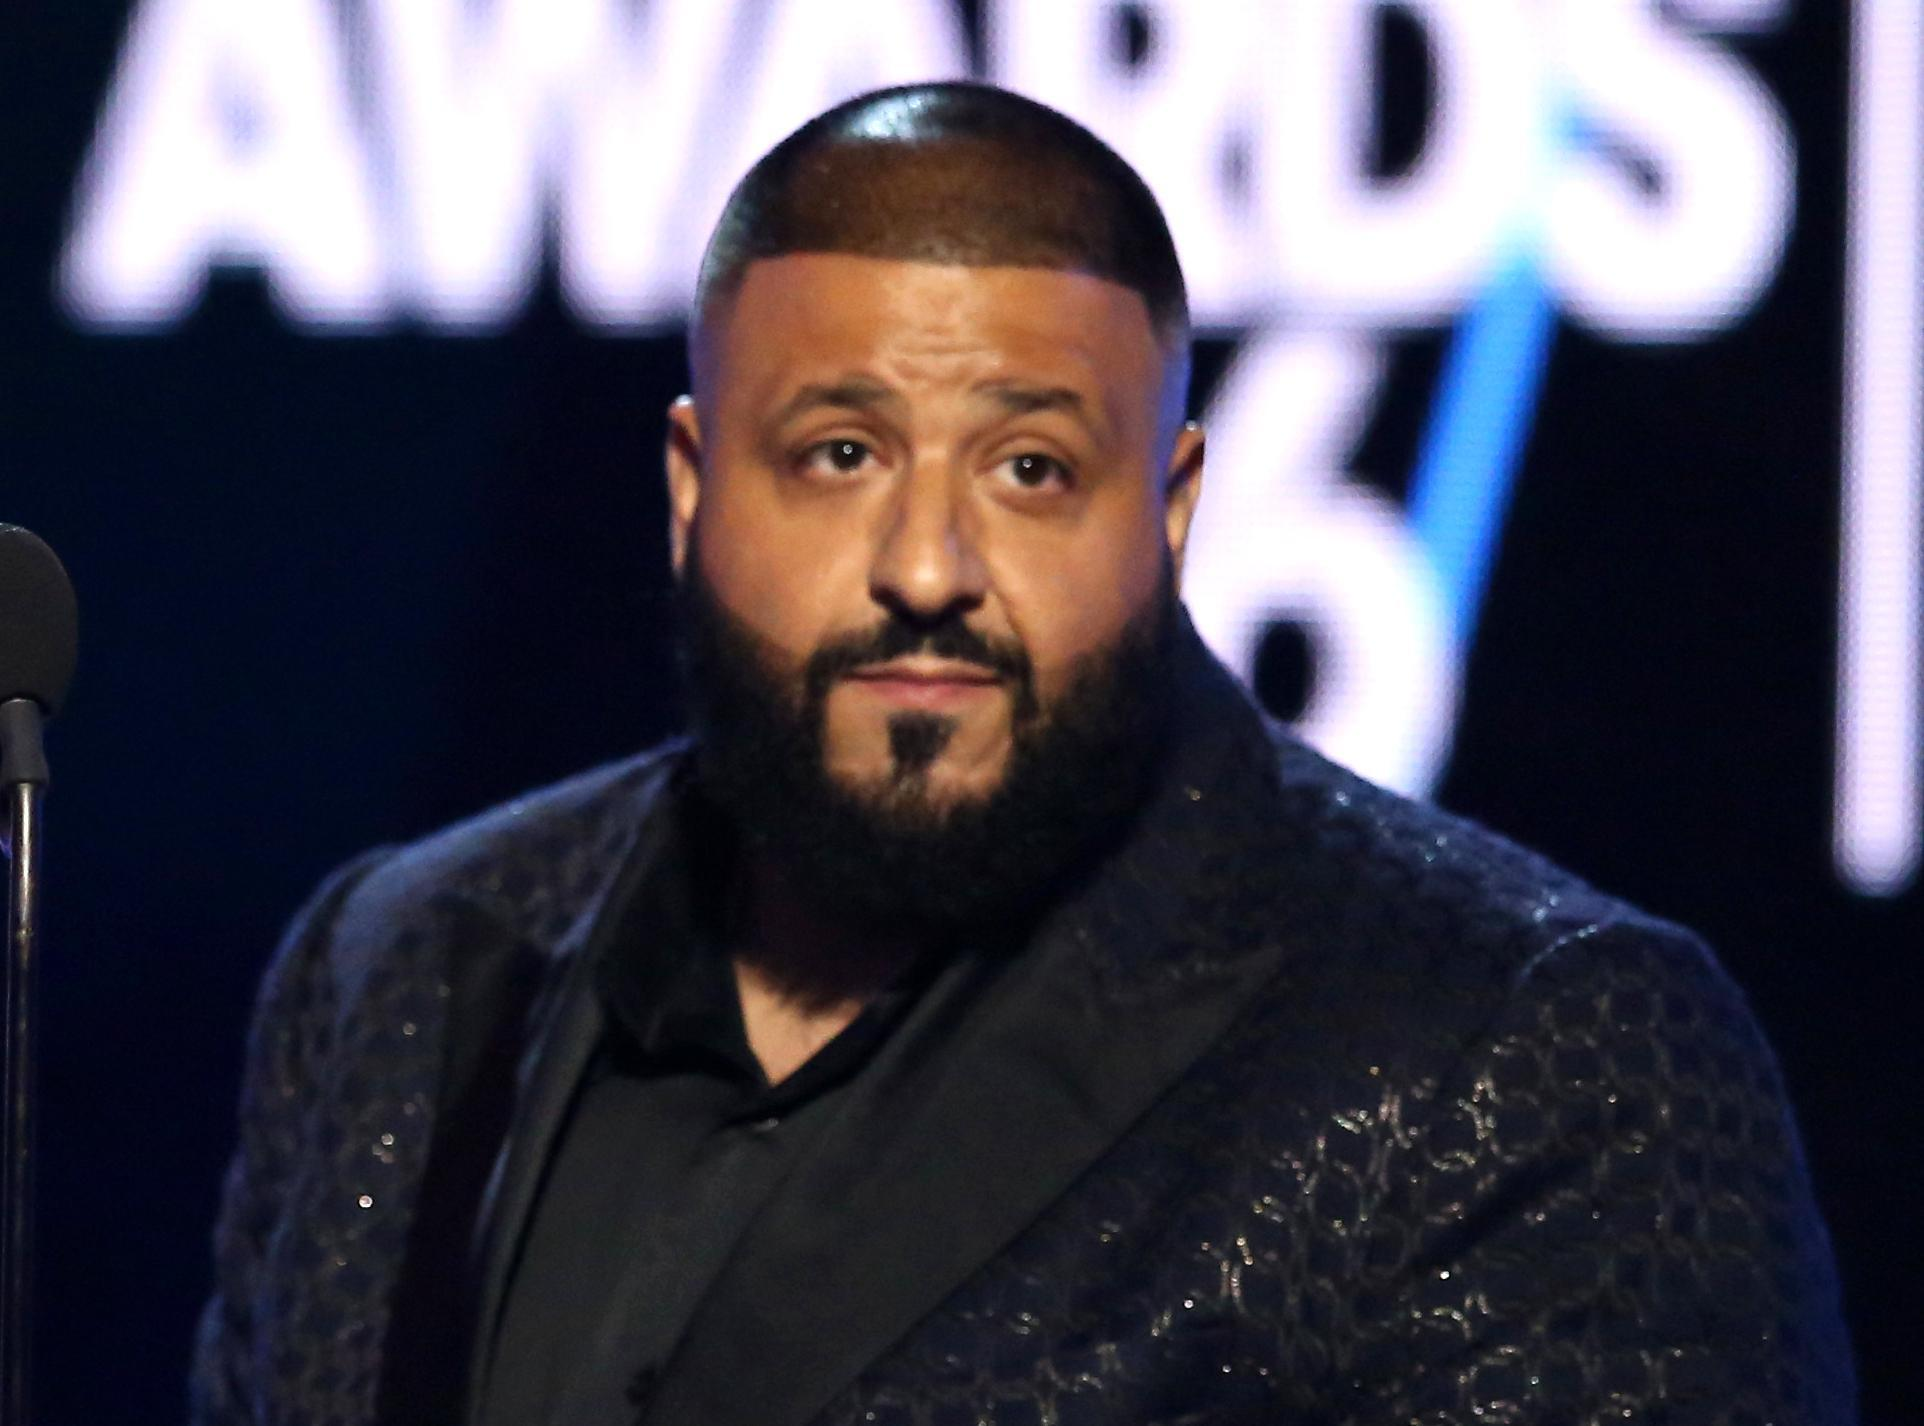 Dj Khaled Wallpapers Images Photos Pictures Backgrounds